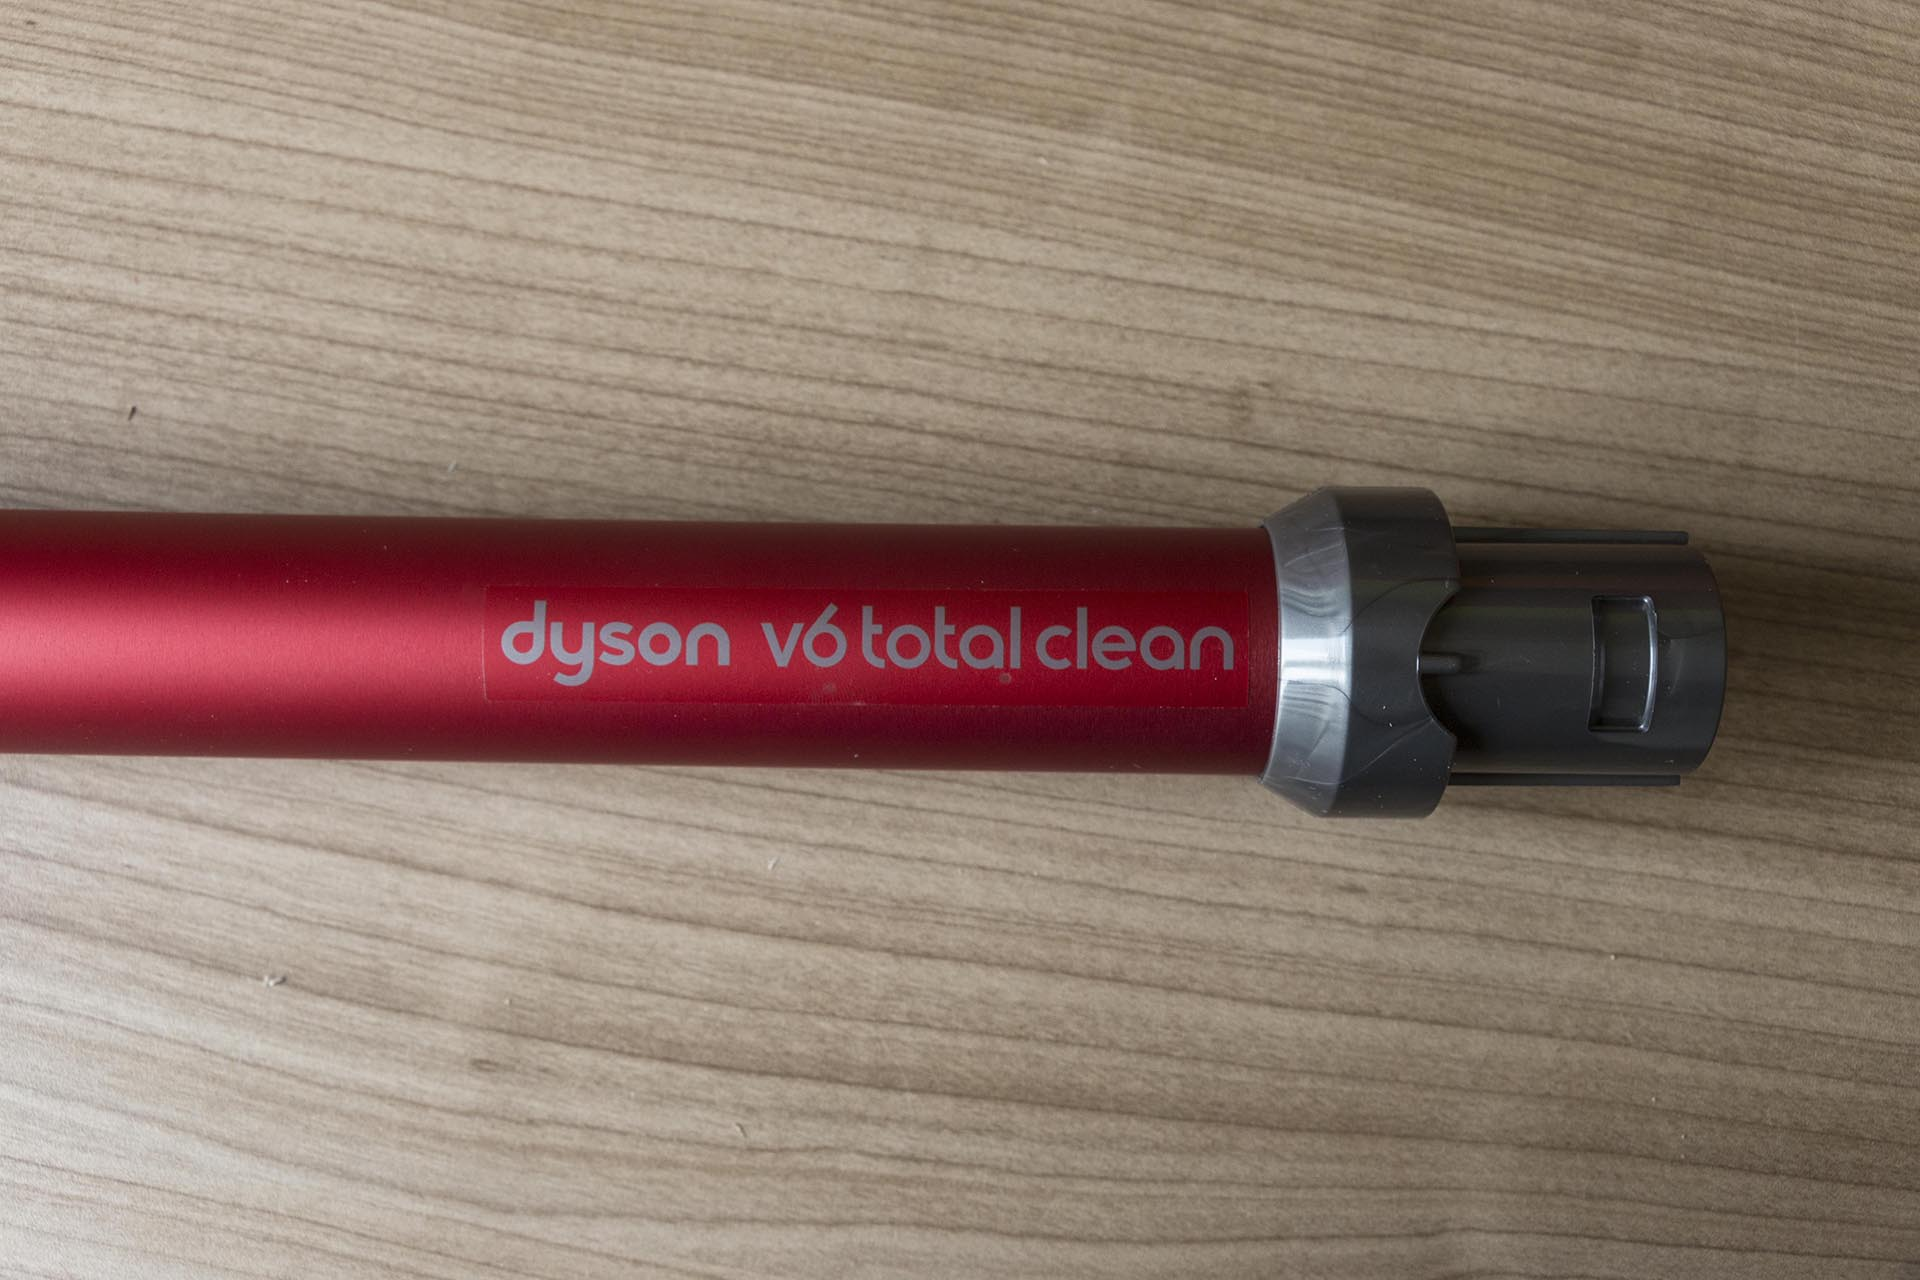 Dyson V6 Total Clean_MG_9424